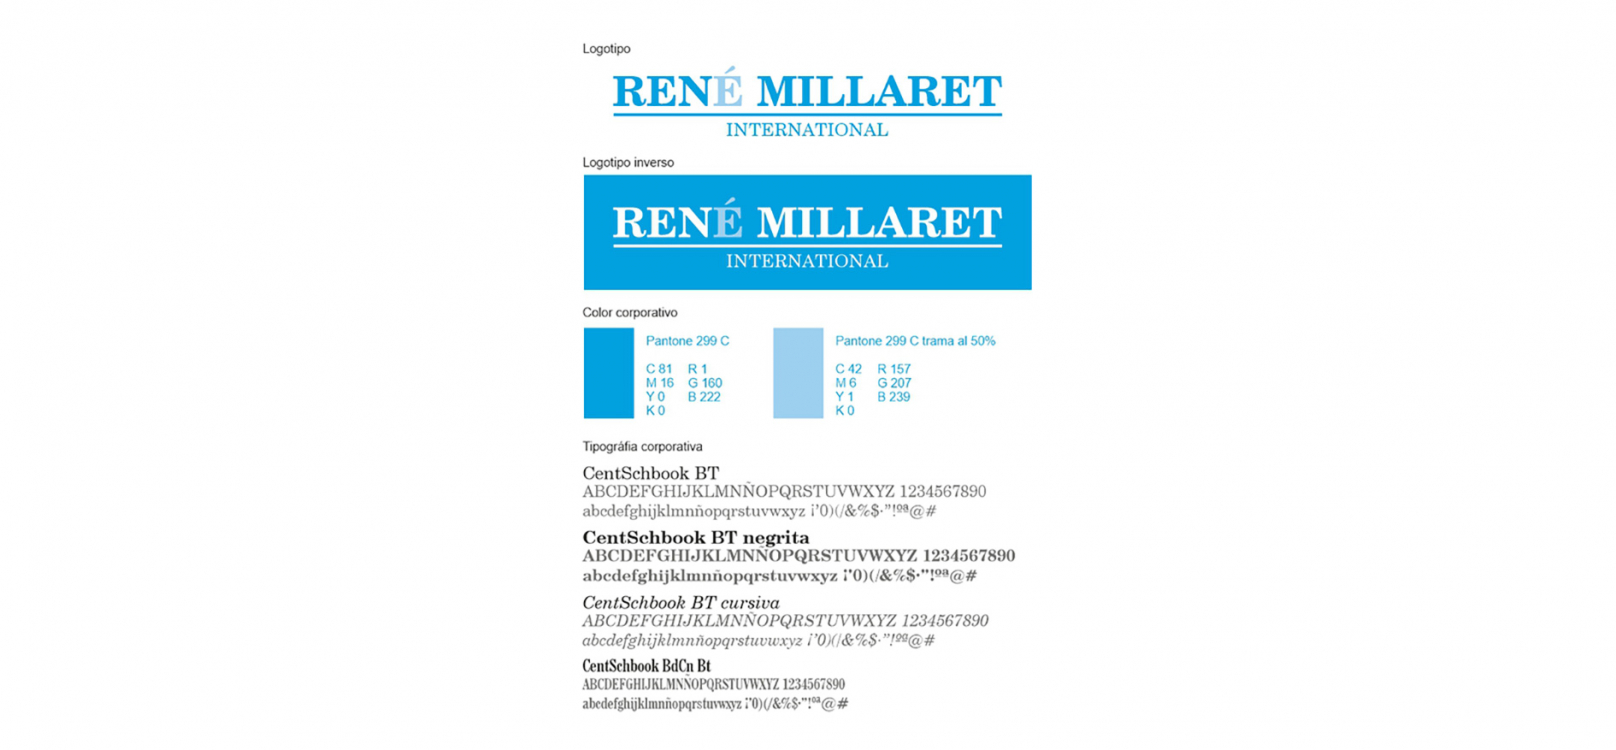 René Millaret International venta y distribución de papel